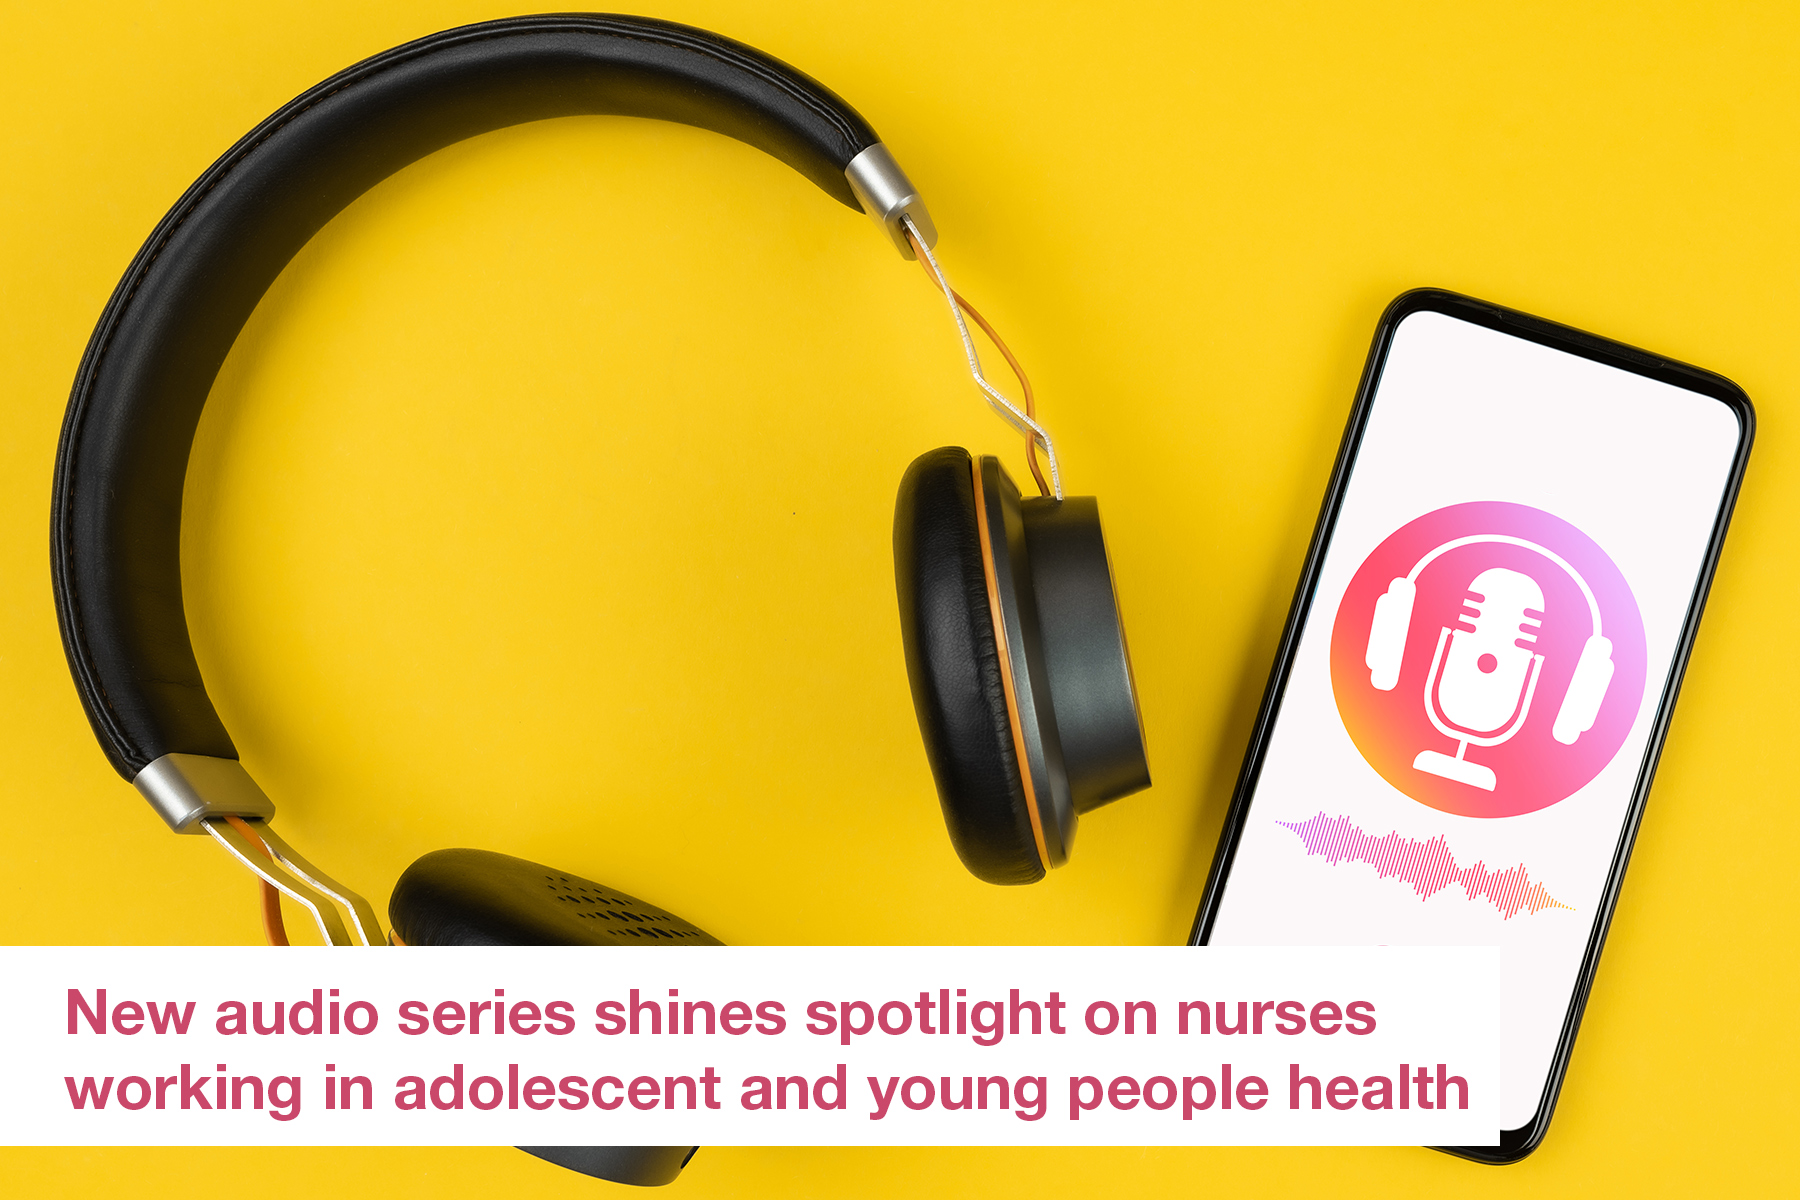 New audio series shines spotlight on nurses working in adolescent and young people health